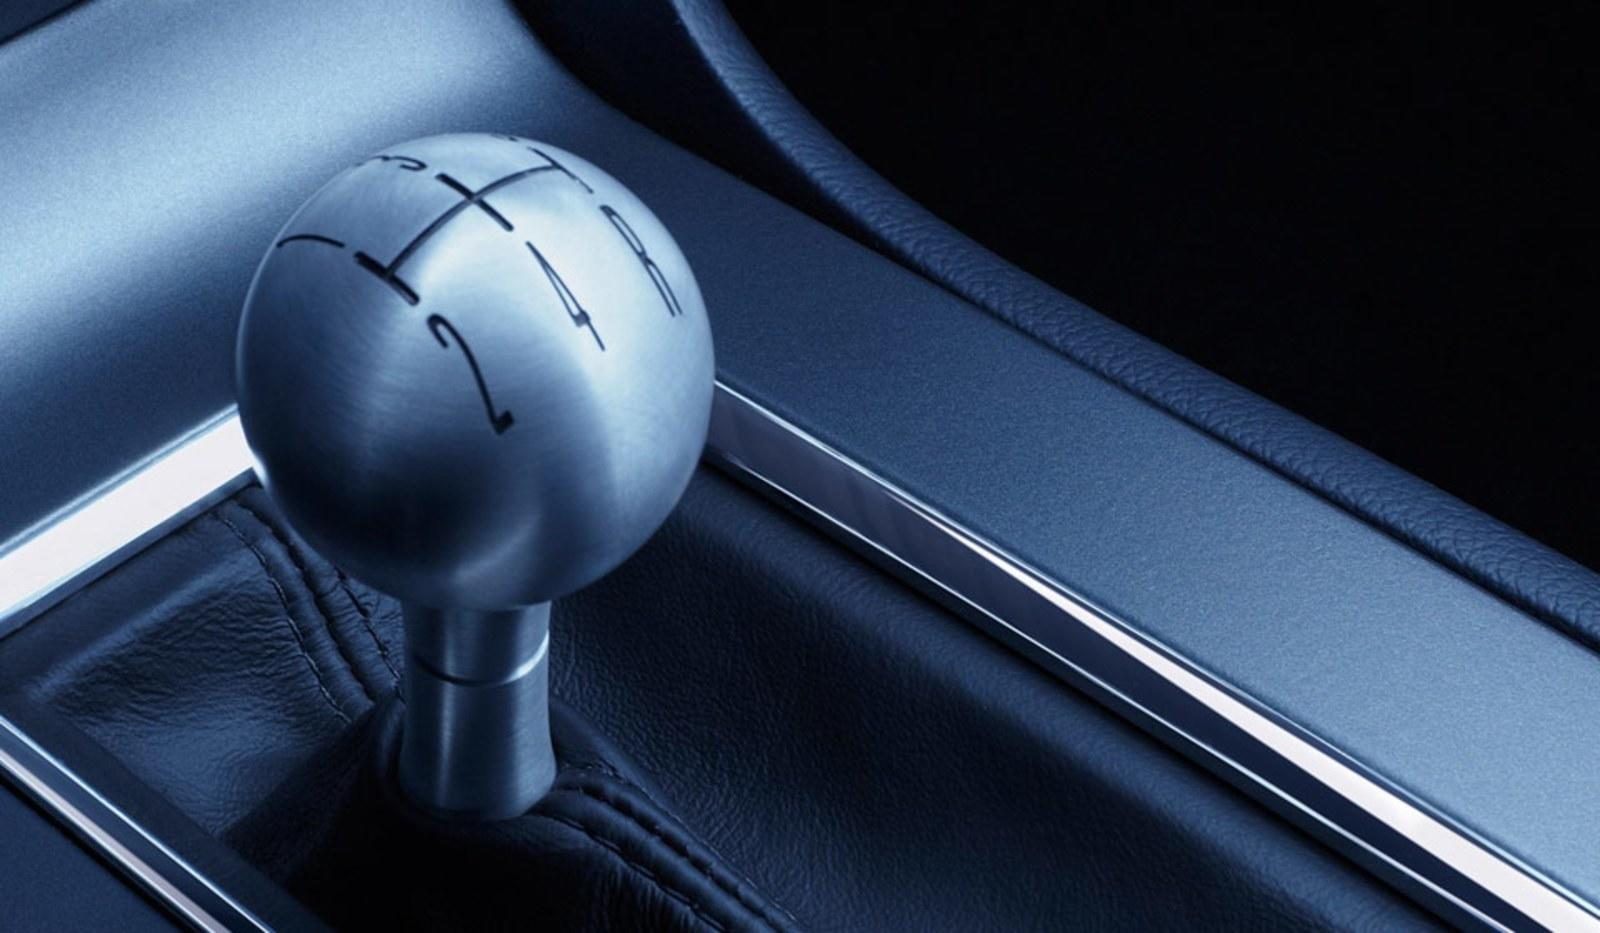 2010 Ford Mustang Shift Knob Teaser News - Top Speed